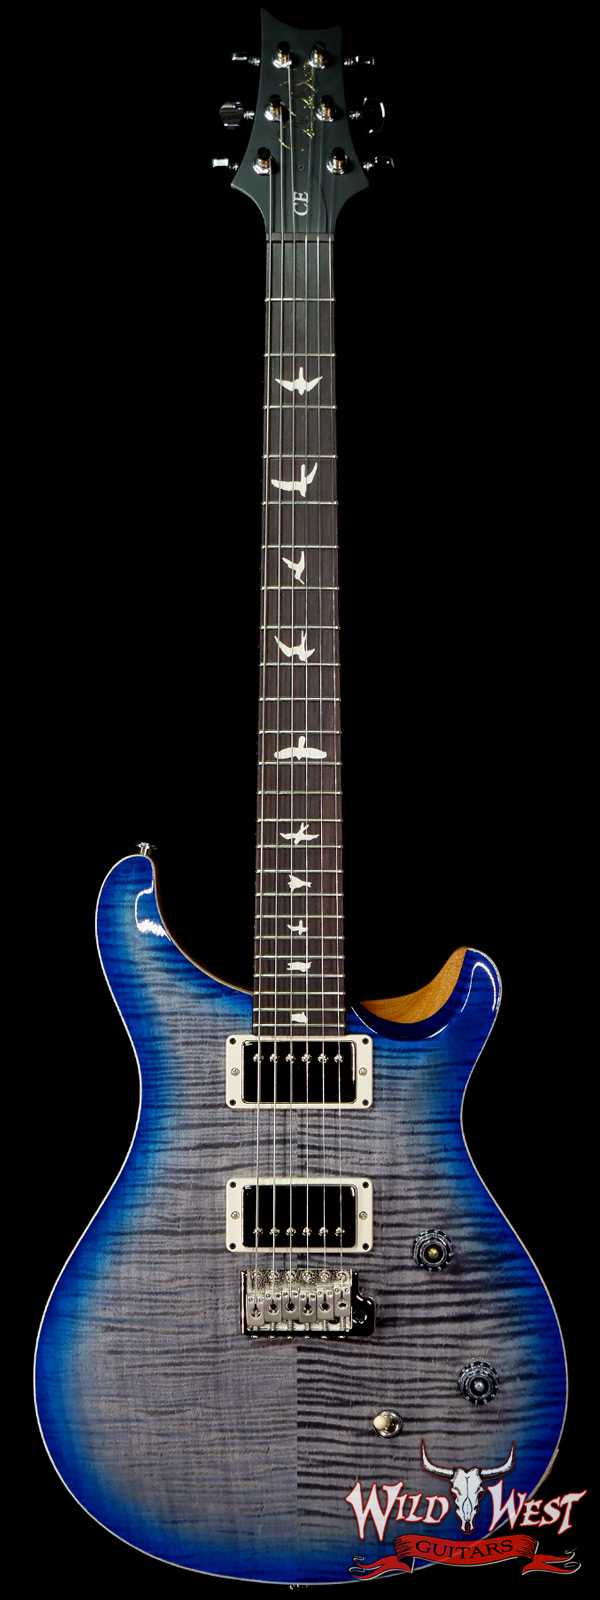 PRS Wild West Guitars Special Run Flame Top Black Neck CE 24 Faded Grey Black Blue Burst 314459